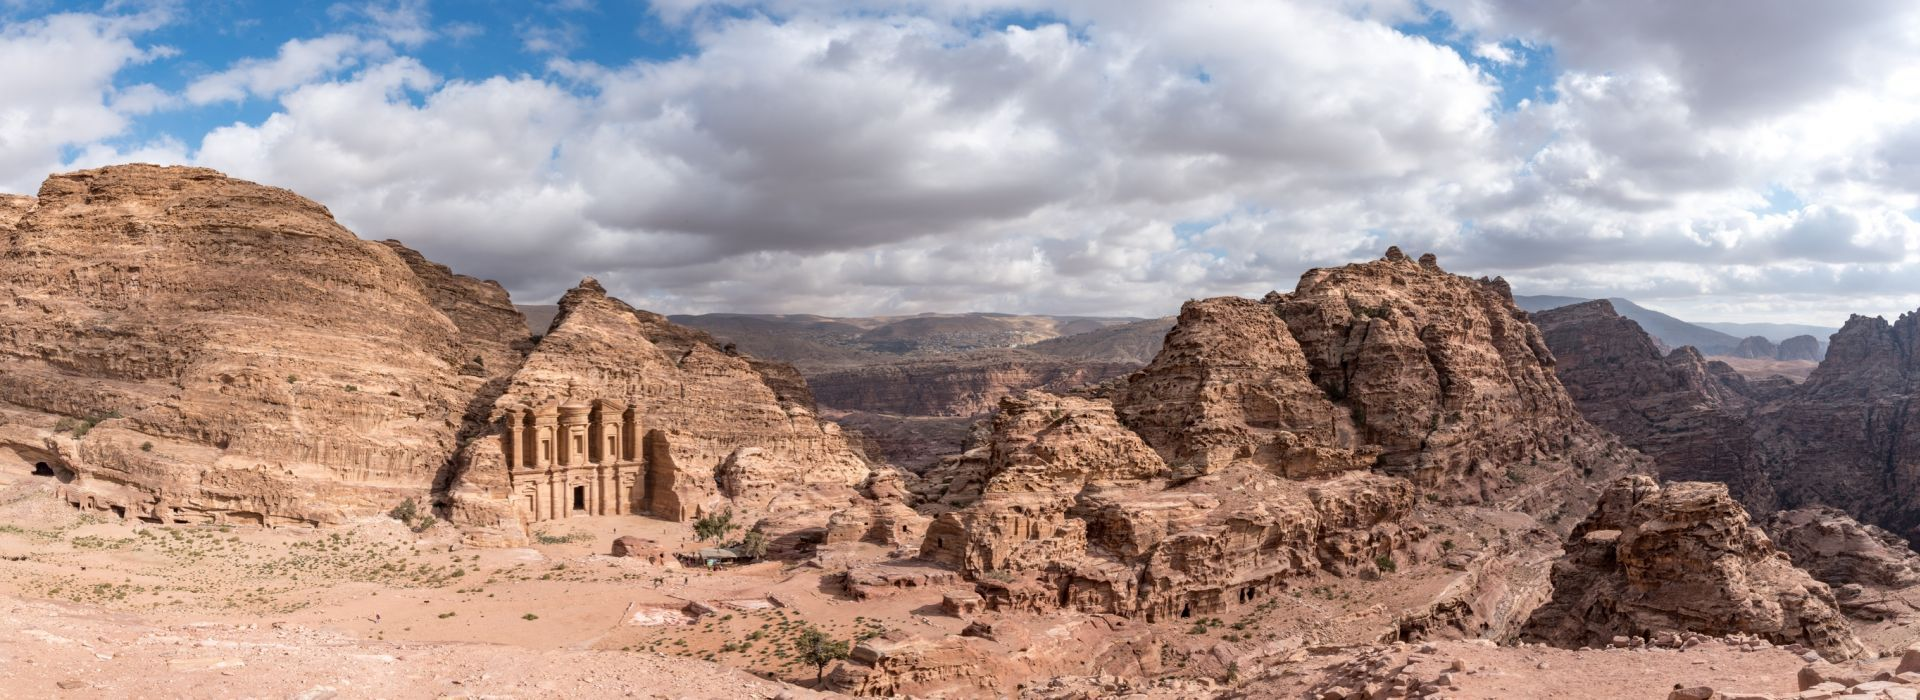 Family Tours in Jordan